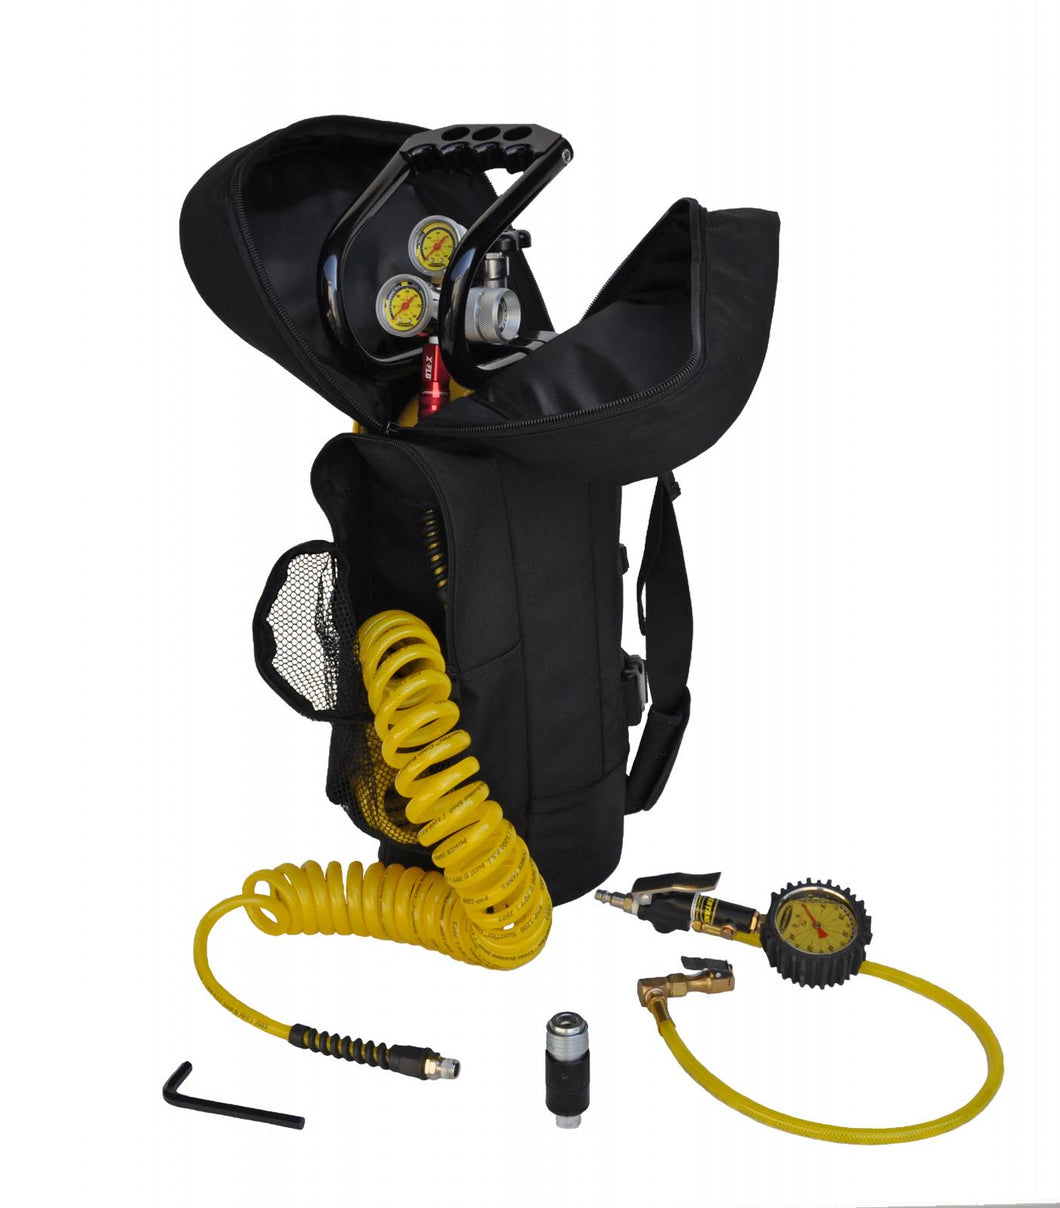 CO2 Tank 10 LB Track Pack Package B System 400 PSI Team Yellow Power Tank